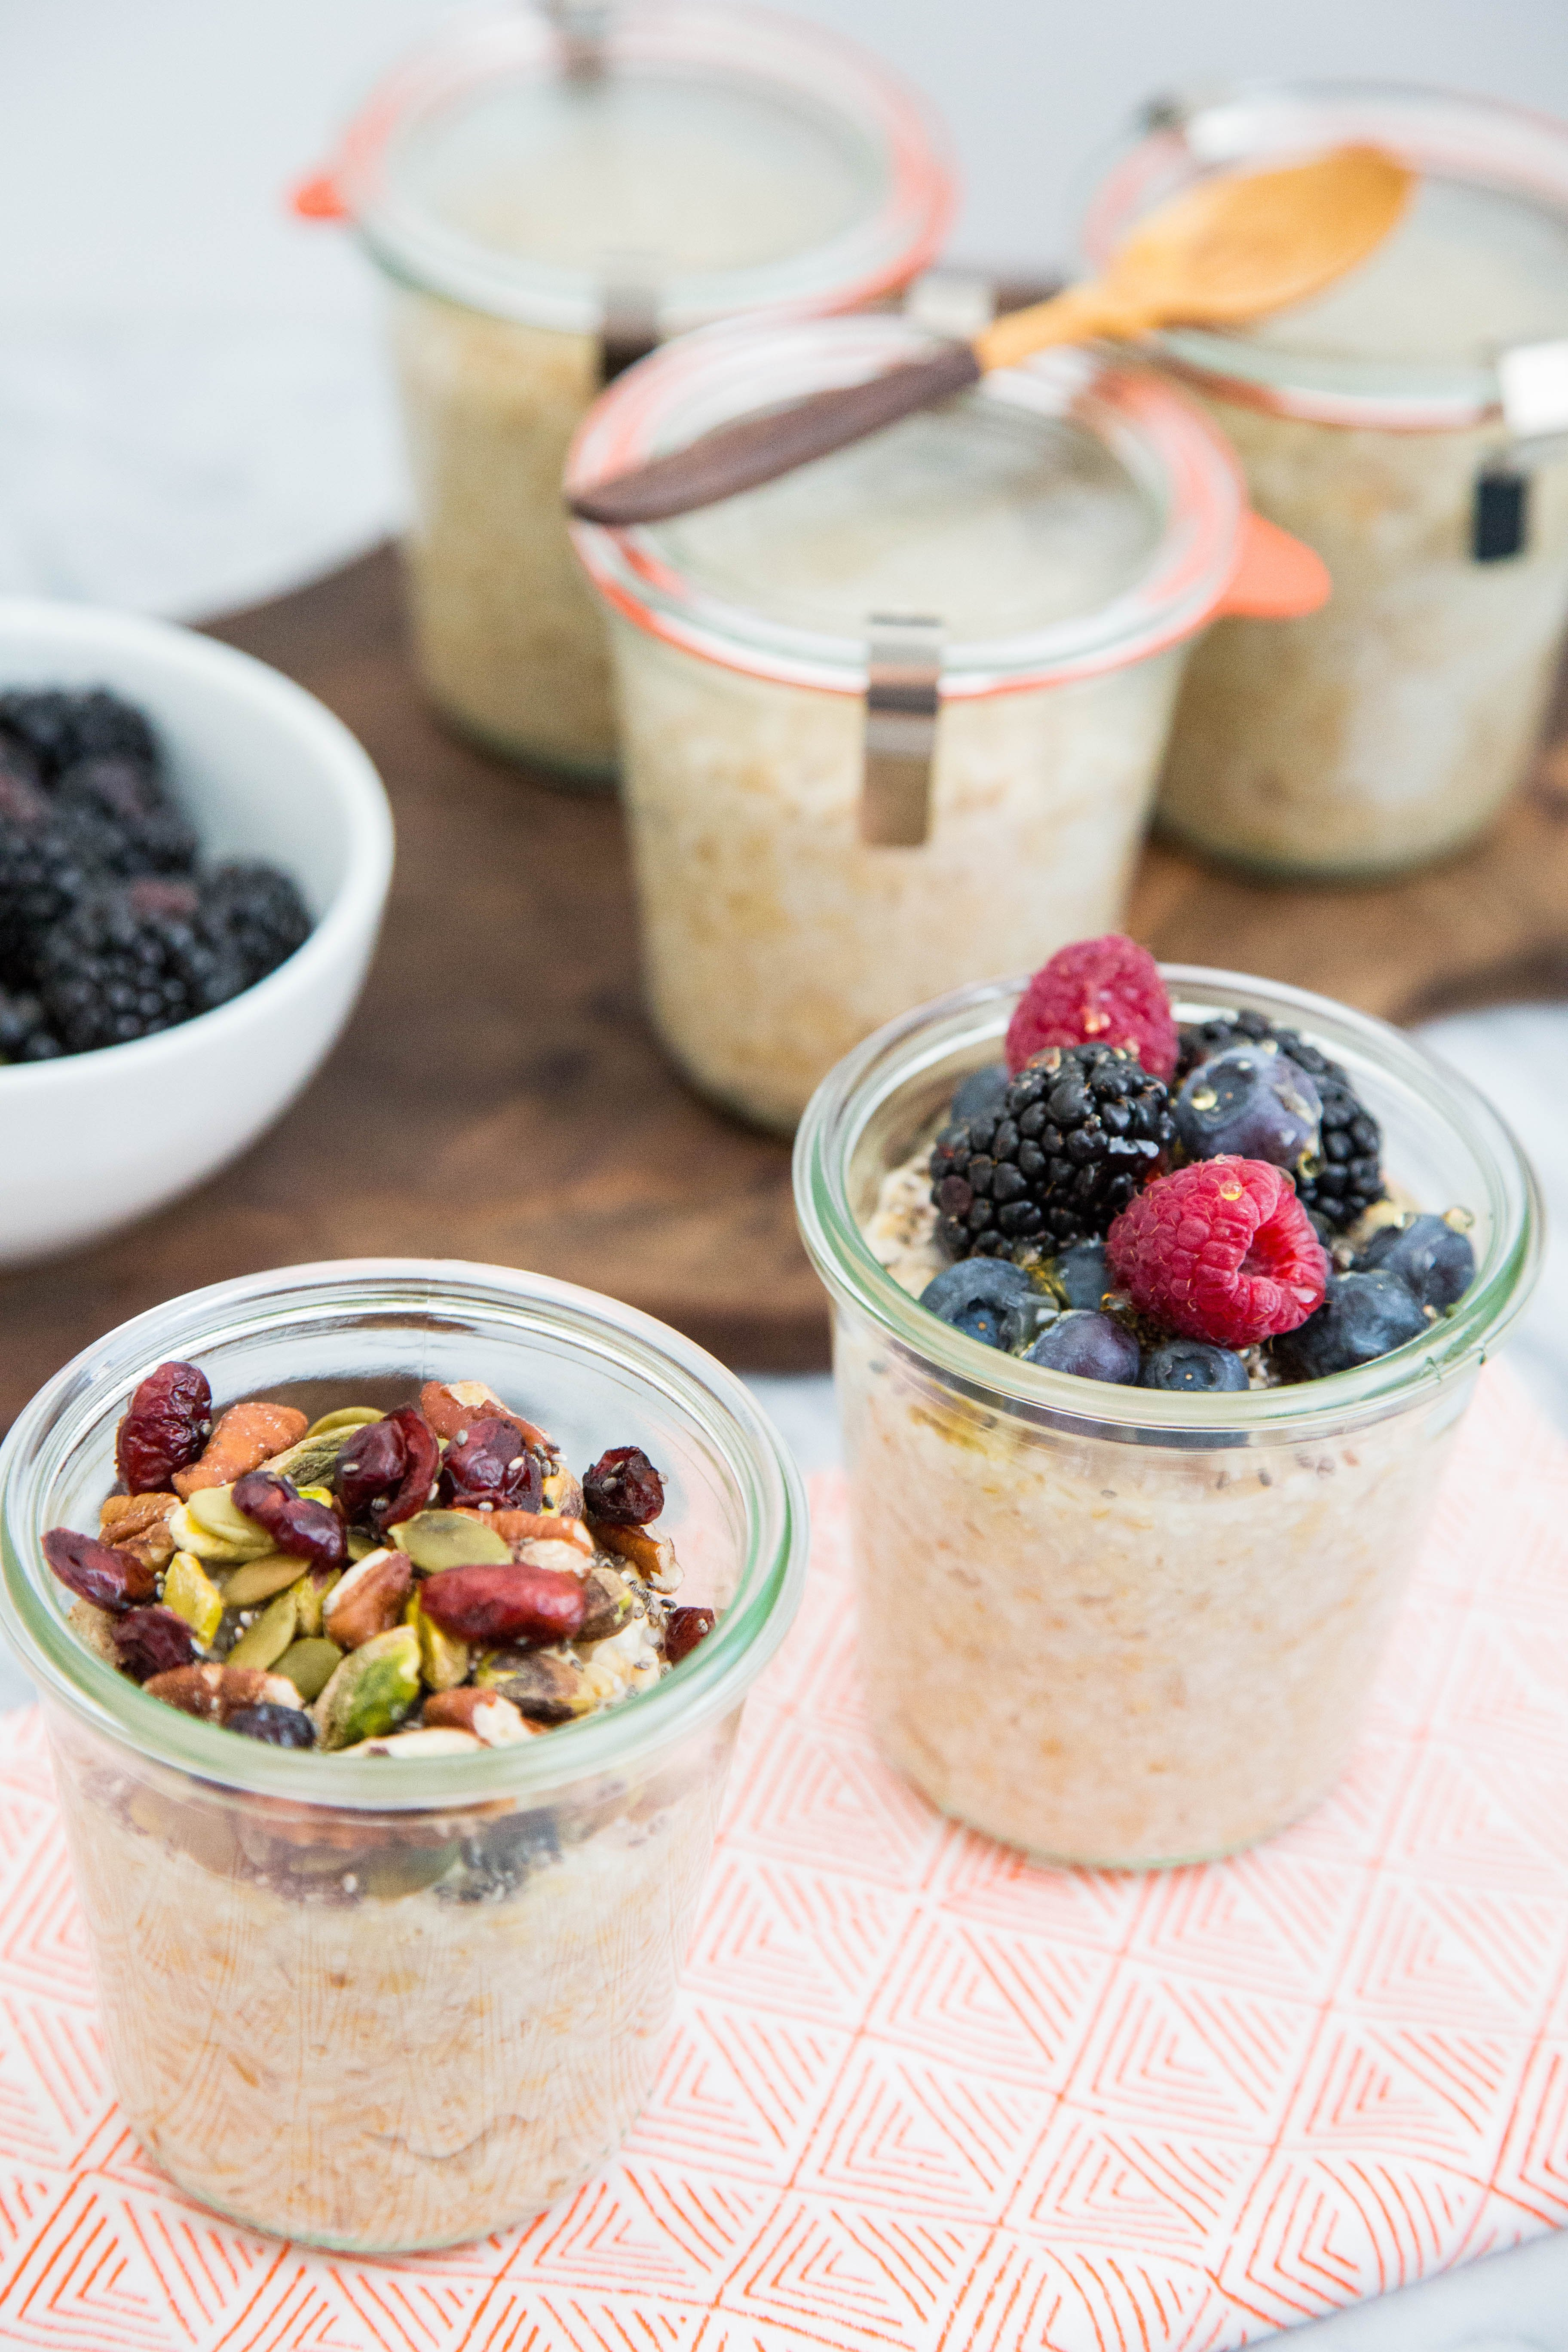 13 Wonderful Ways to Eat Your Oats | Kitchn